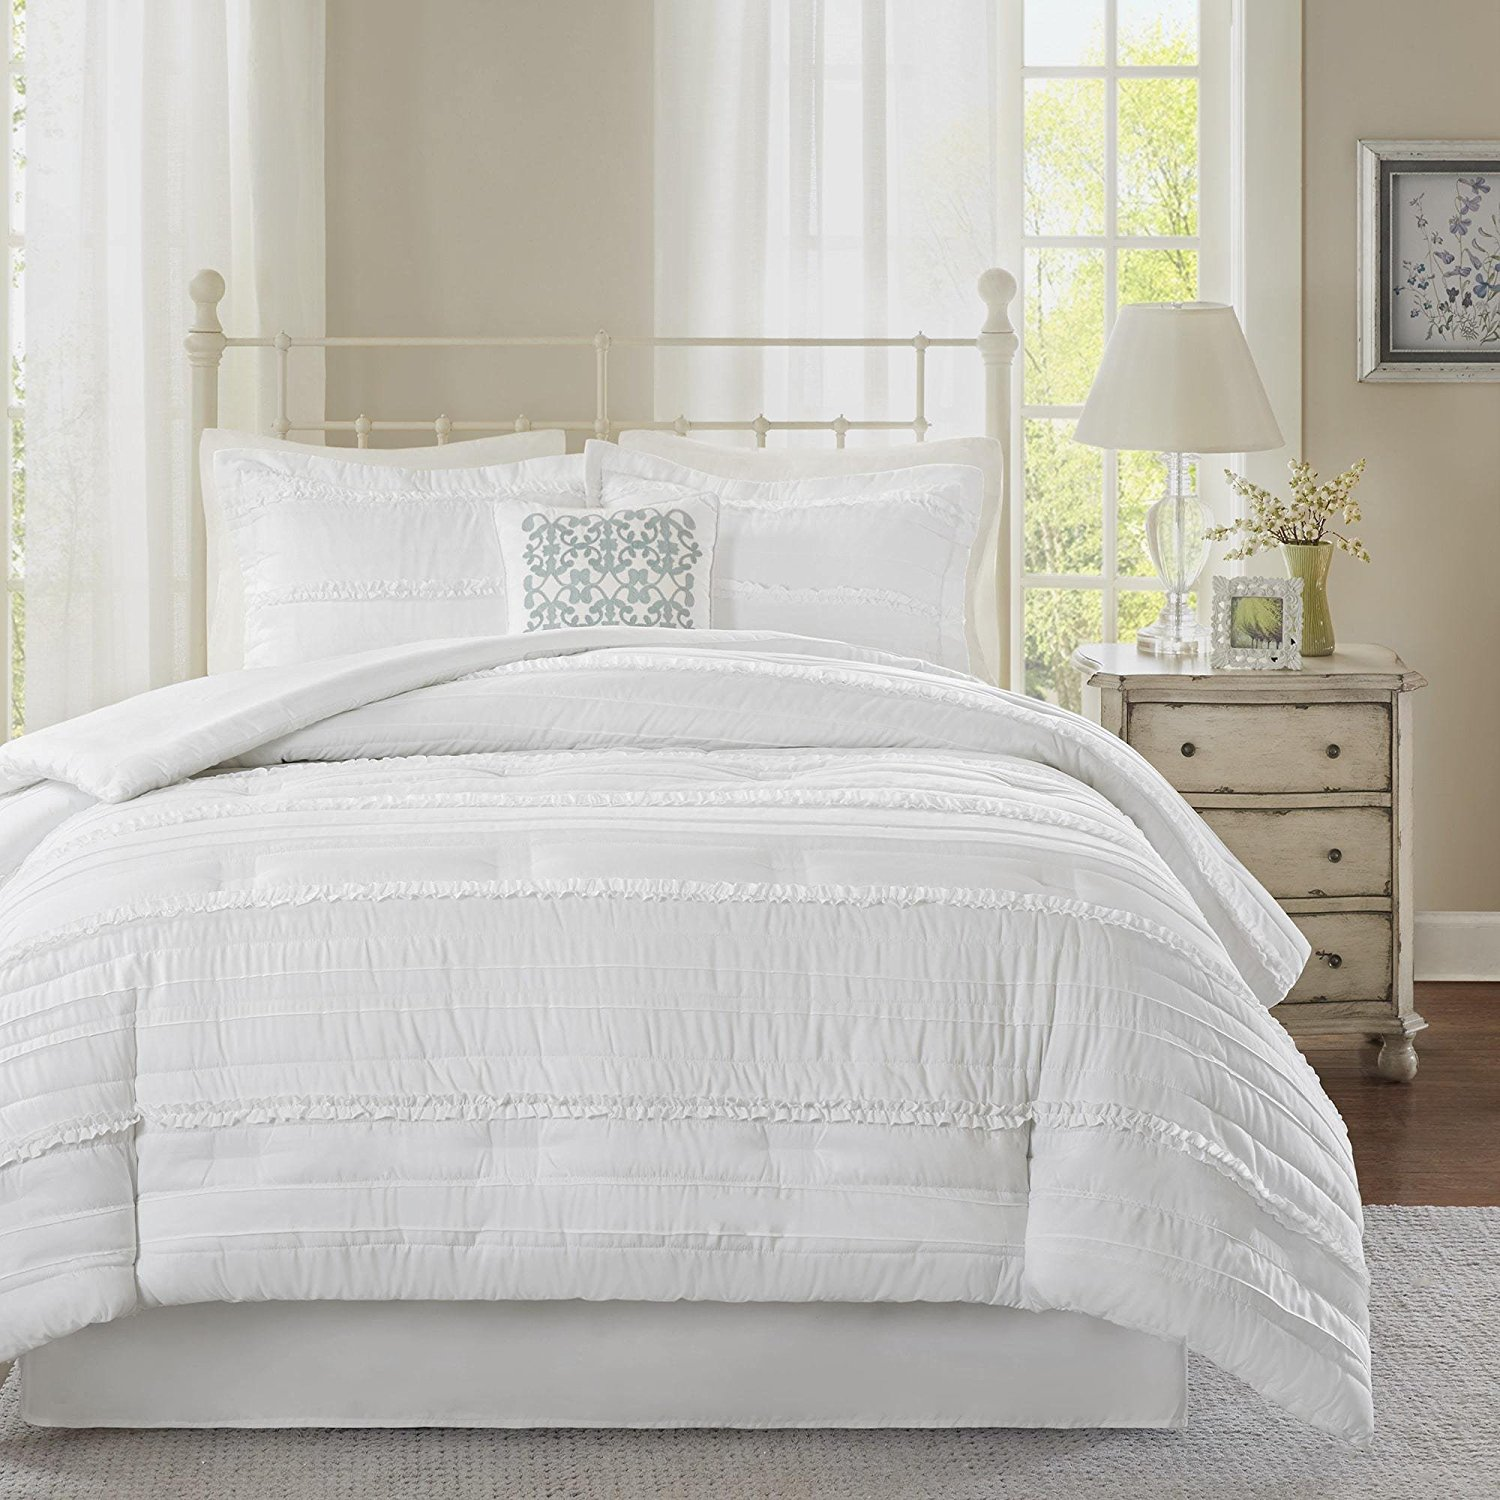 5 Piece White Solid Ruffled Stripes Pattern Comforter Cal-King Set, Beautiful Stylisg ruched Horizonral Stripe Design, Boho Shabby Chic Print, Reversible Bedding, Classic French Country Style, Unisex